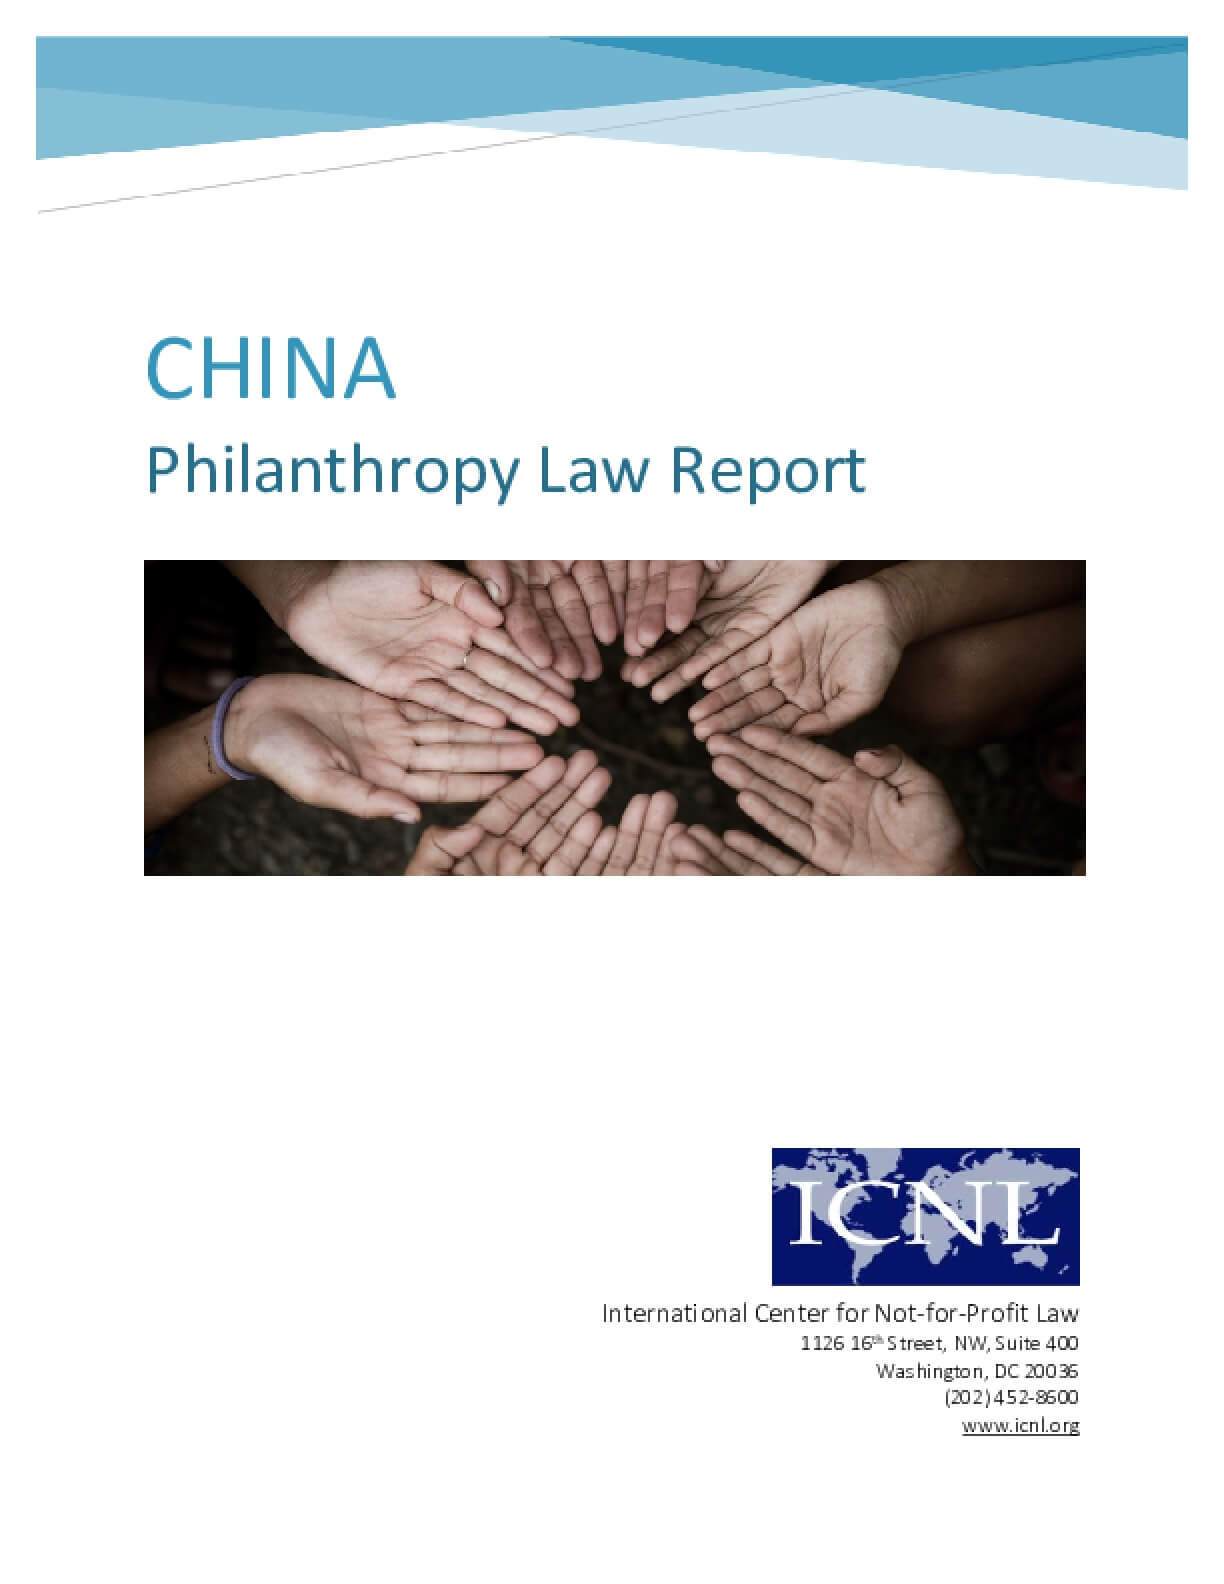 China Philanthropy Law Report